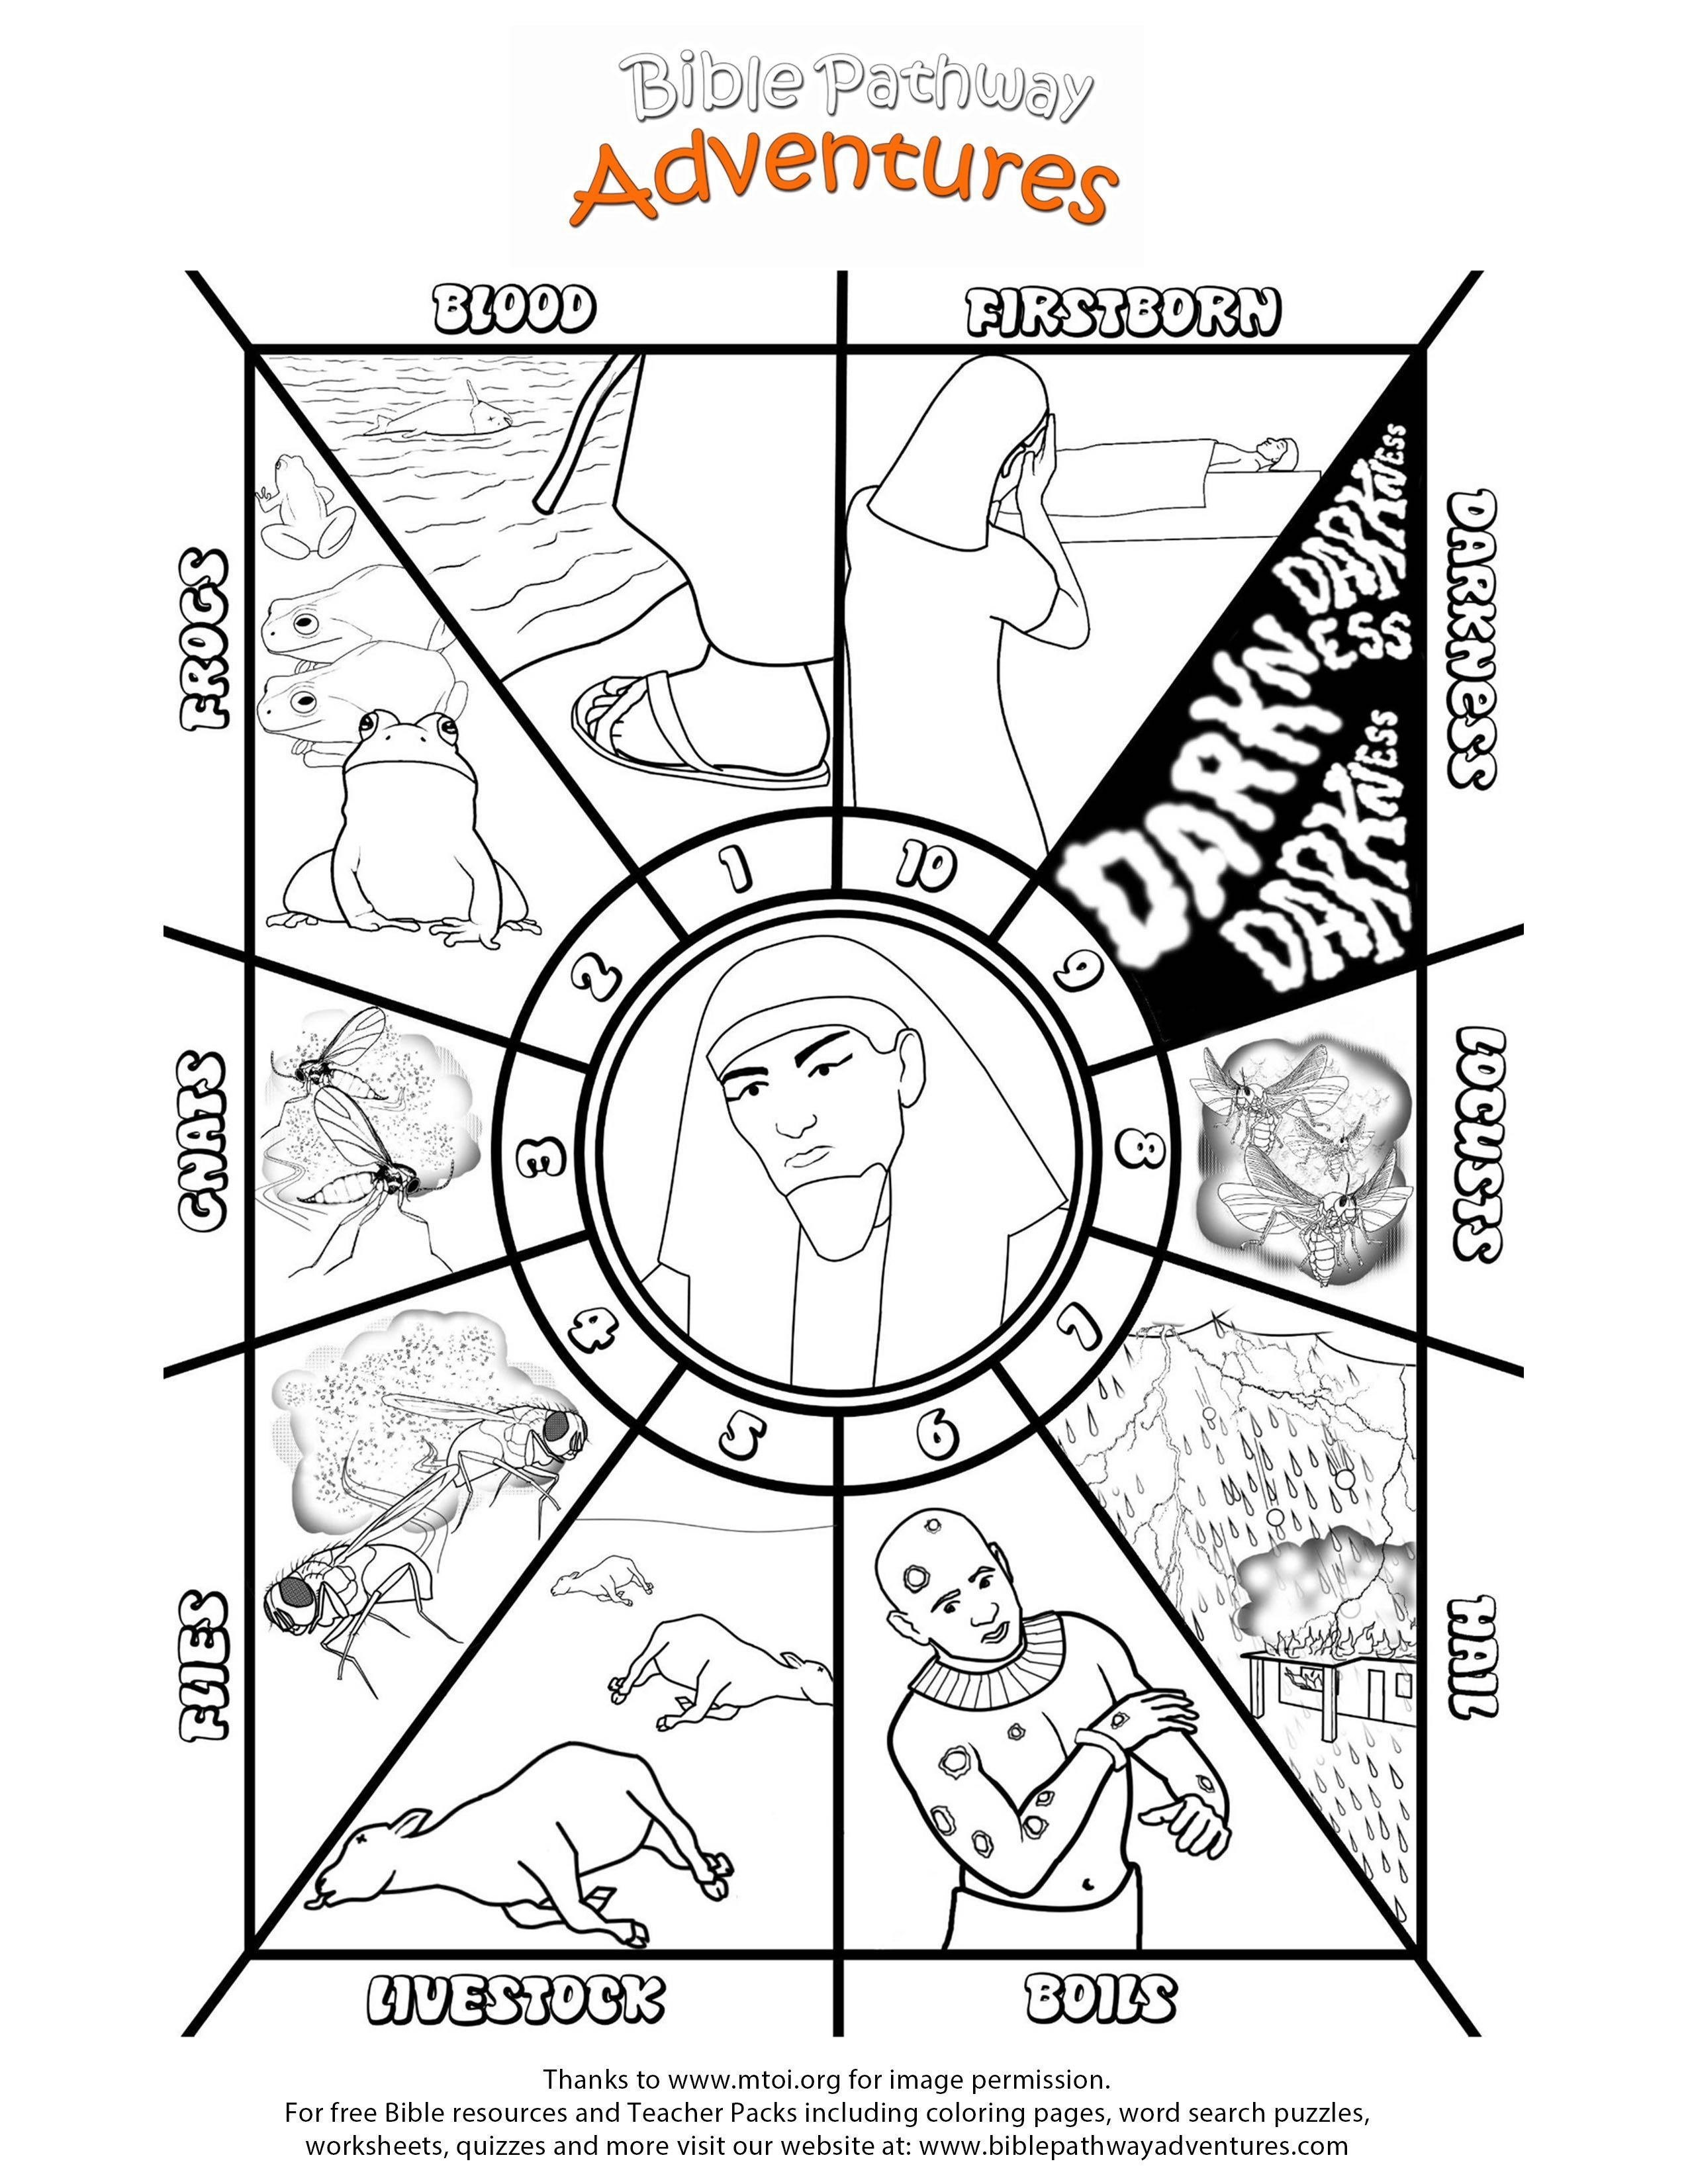 10 plagues of egypt coloring pages ten plagues of egypt clip art moses ten plagues clip art plagues pages egypt of 10 coloring